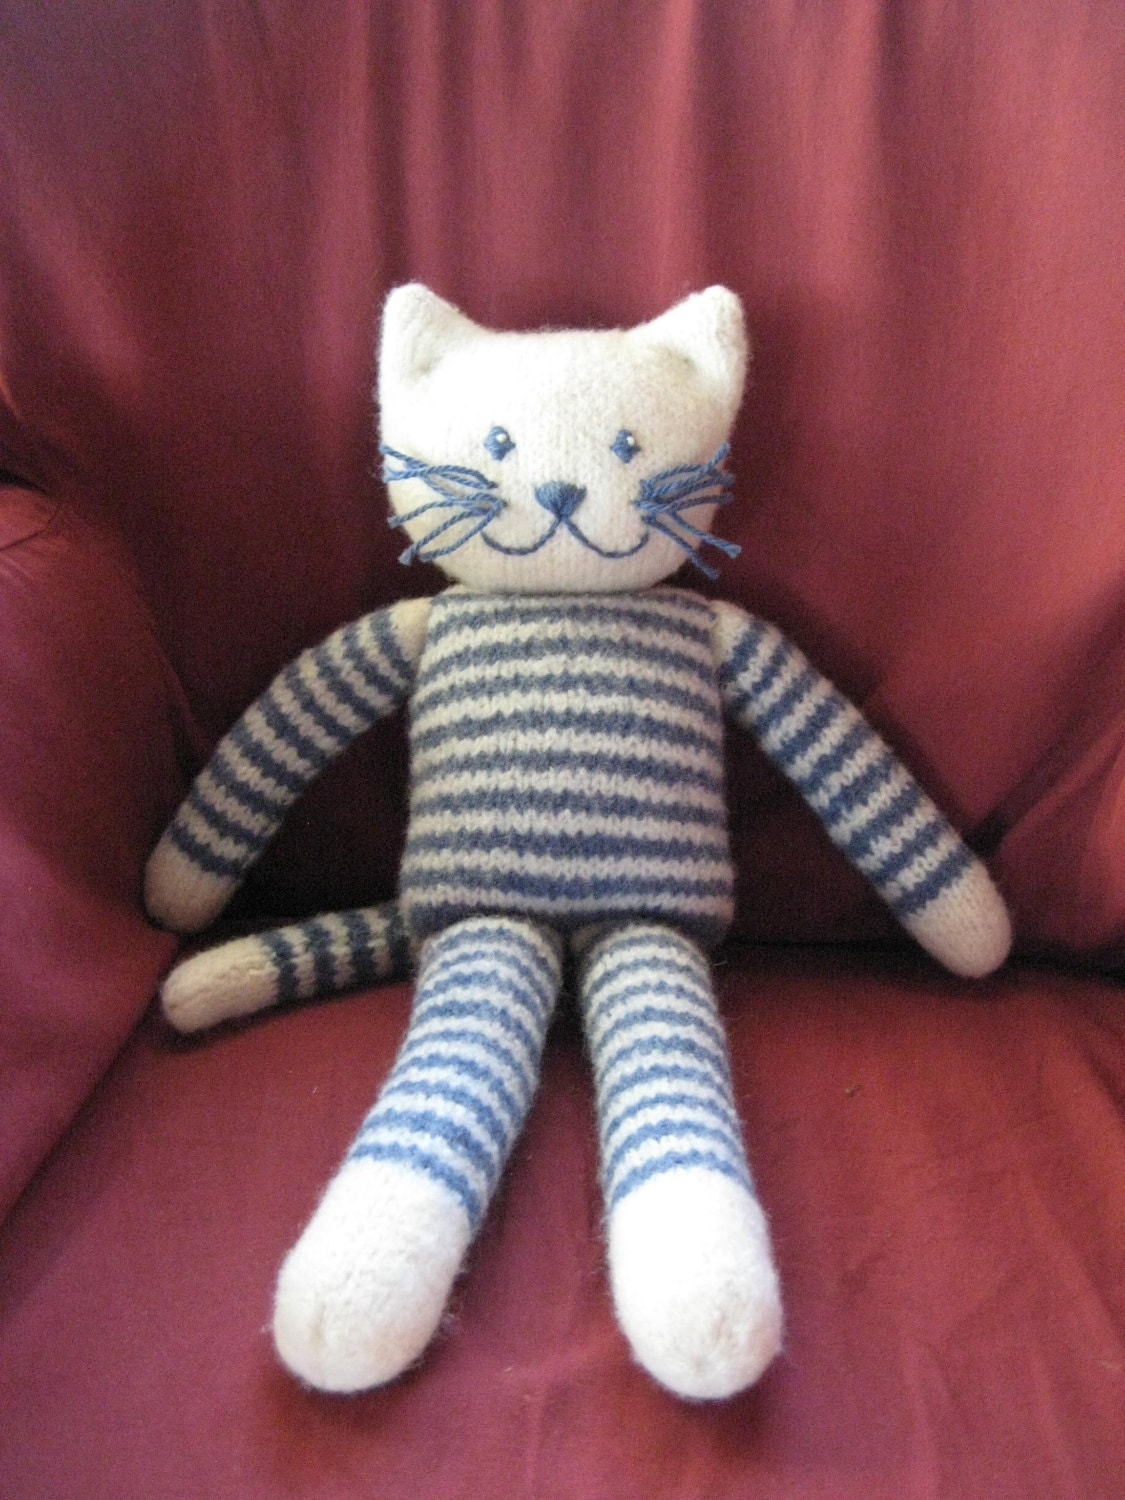 Knitting Patterns Plush Toys : Plush Felted Kitty PDF Knitting Pattern Cat stuffed toy